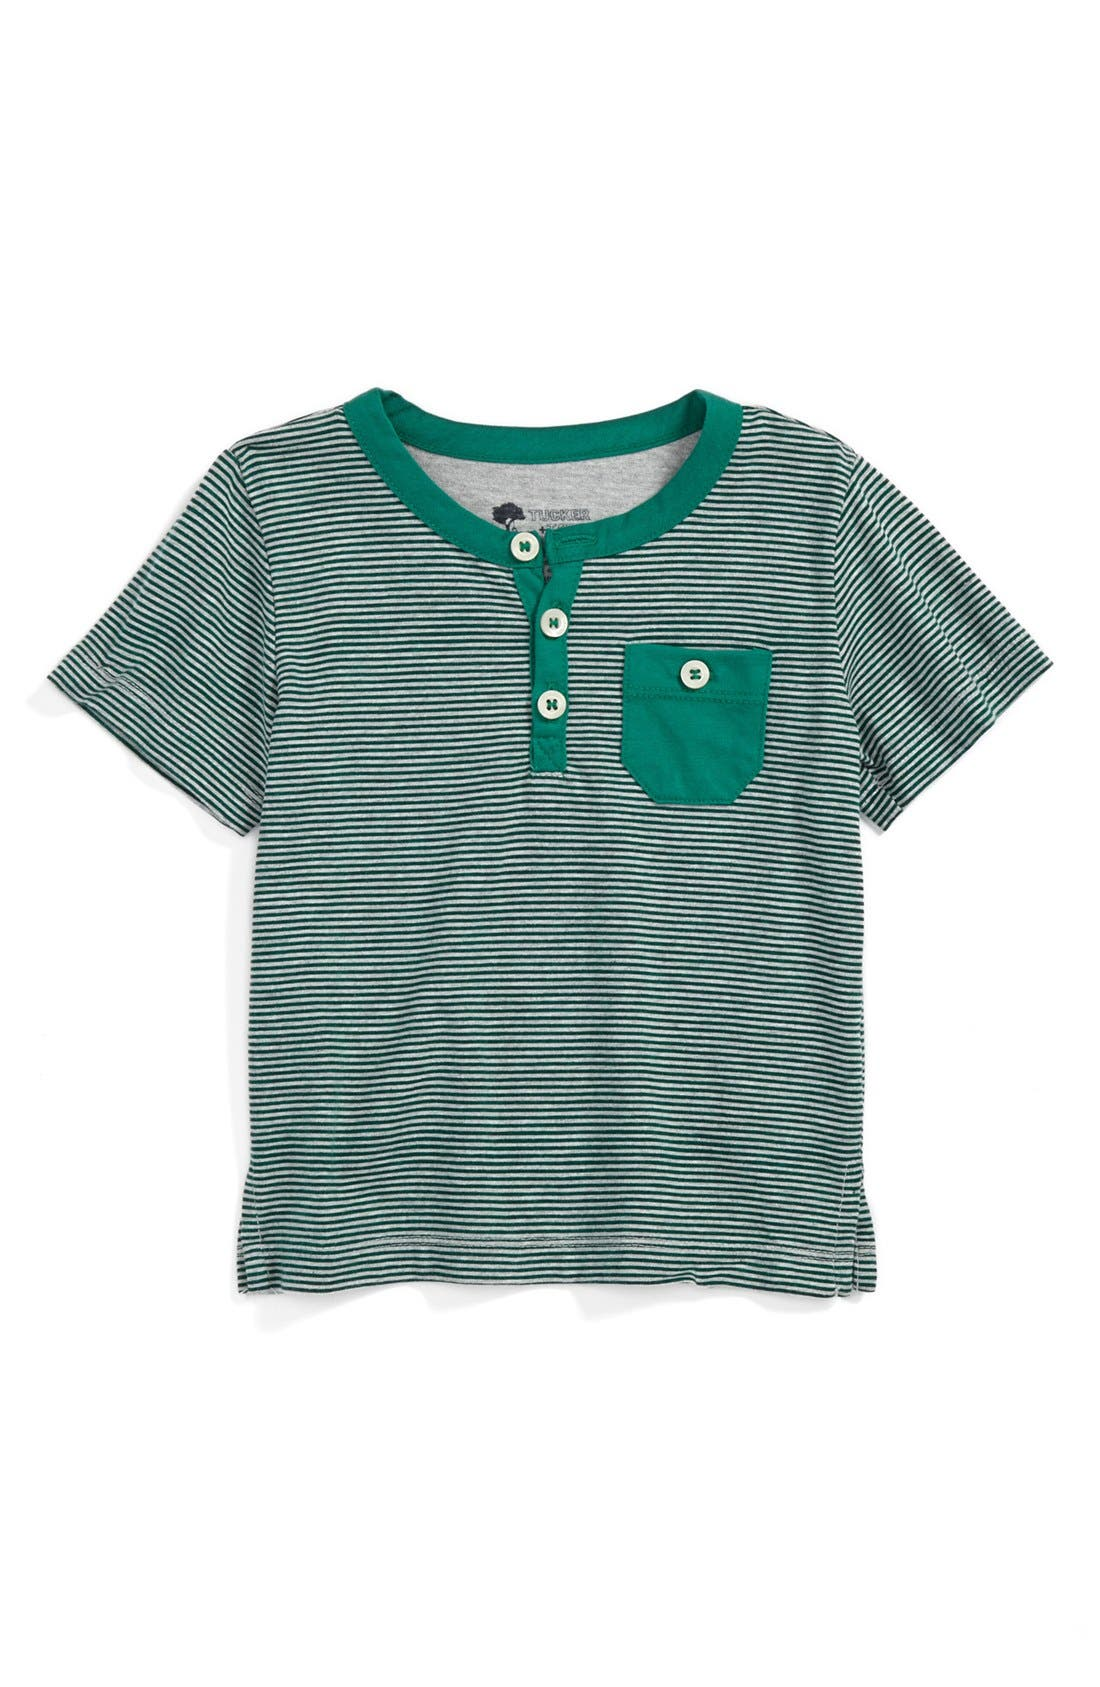 Alternate Image 1 Selected - Tucker + Tate 'Parker Road' Henley T-Shirt (Baby Boys)